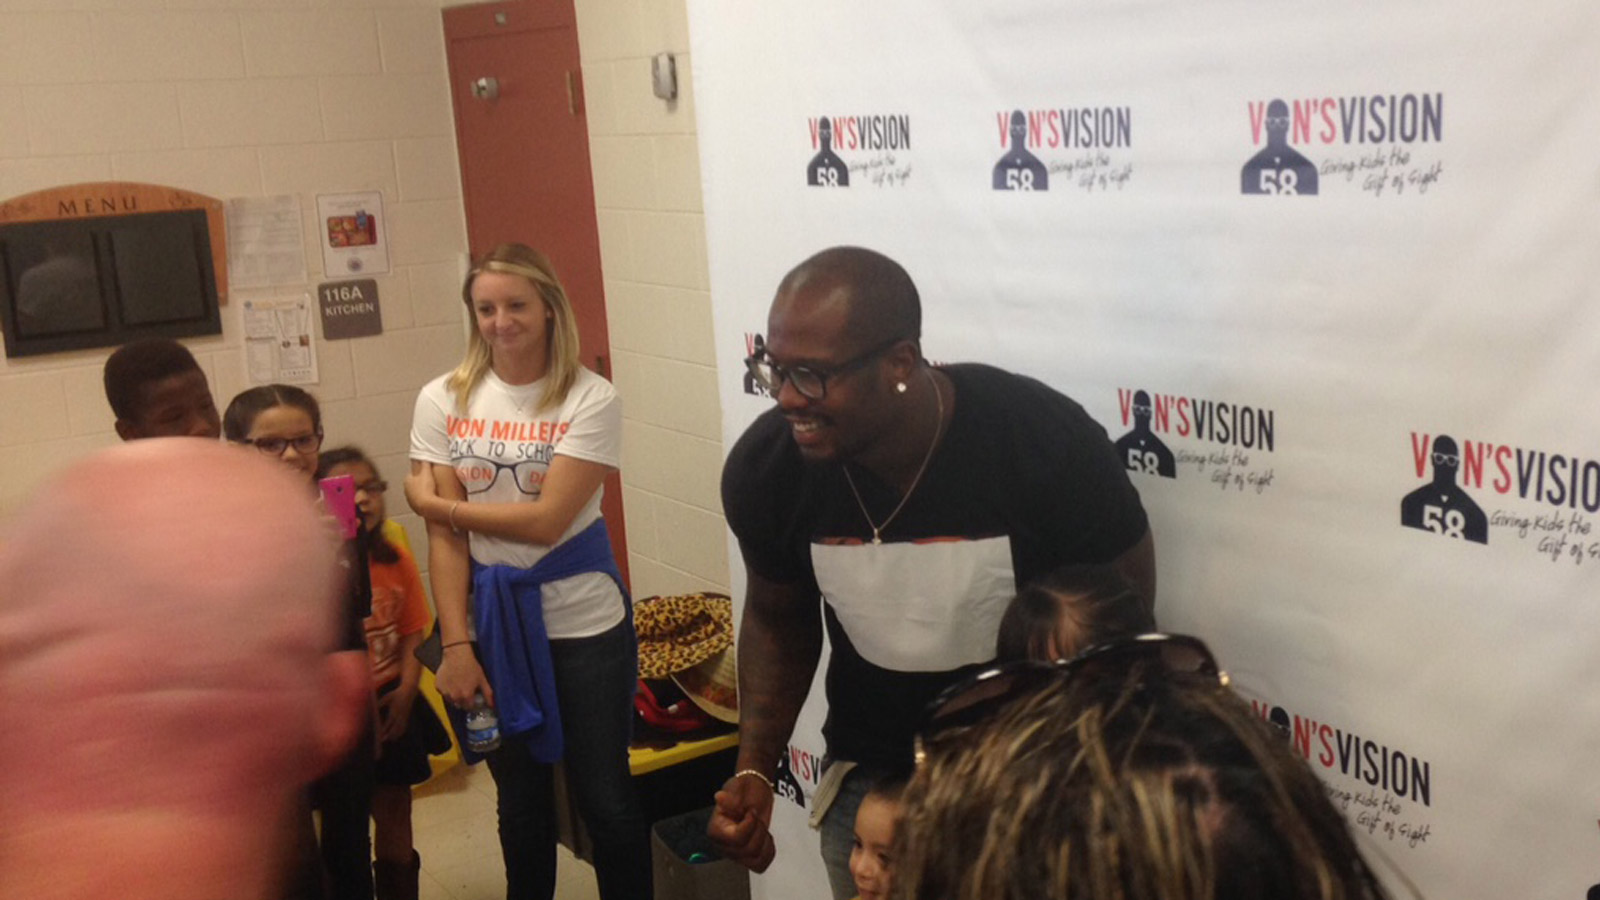 Von Miller's Back to School Vision Day event on Friday (credit: CBS)